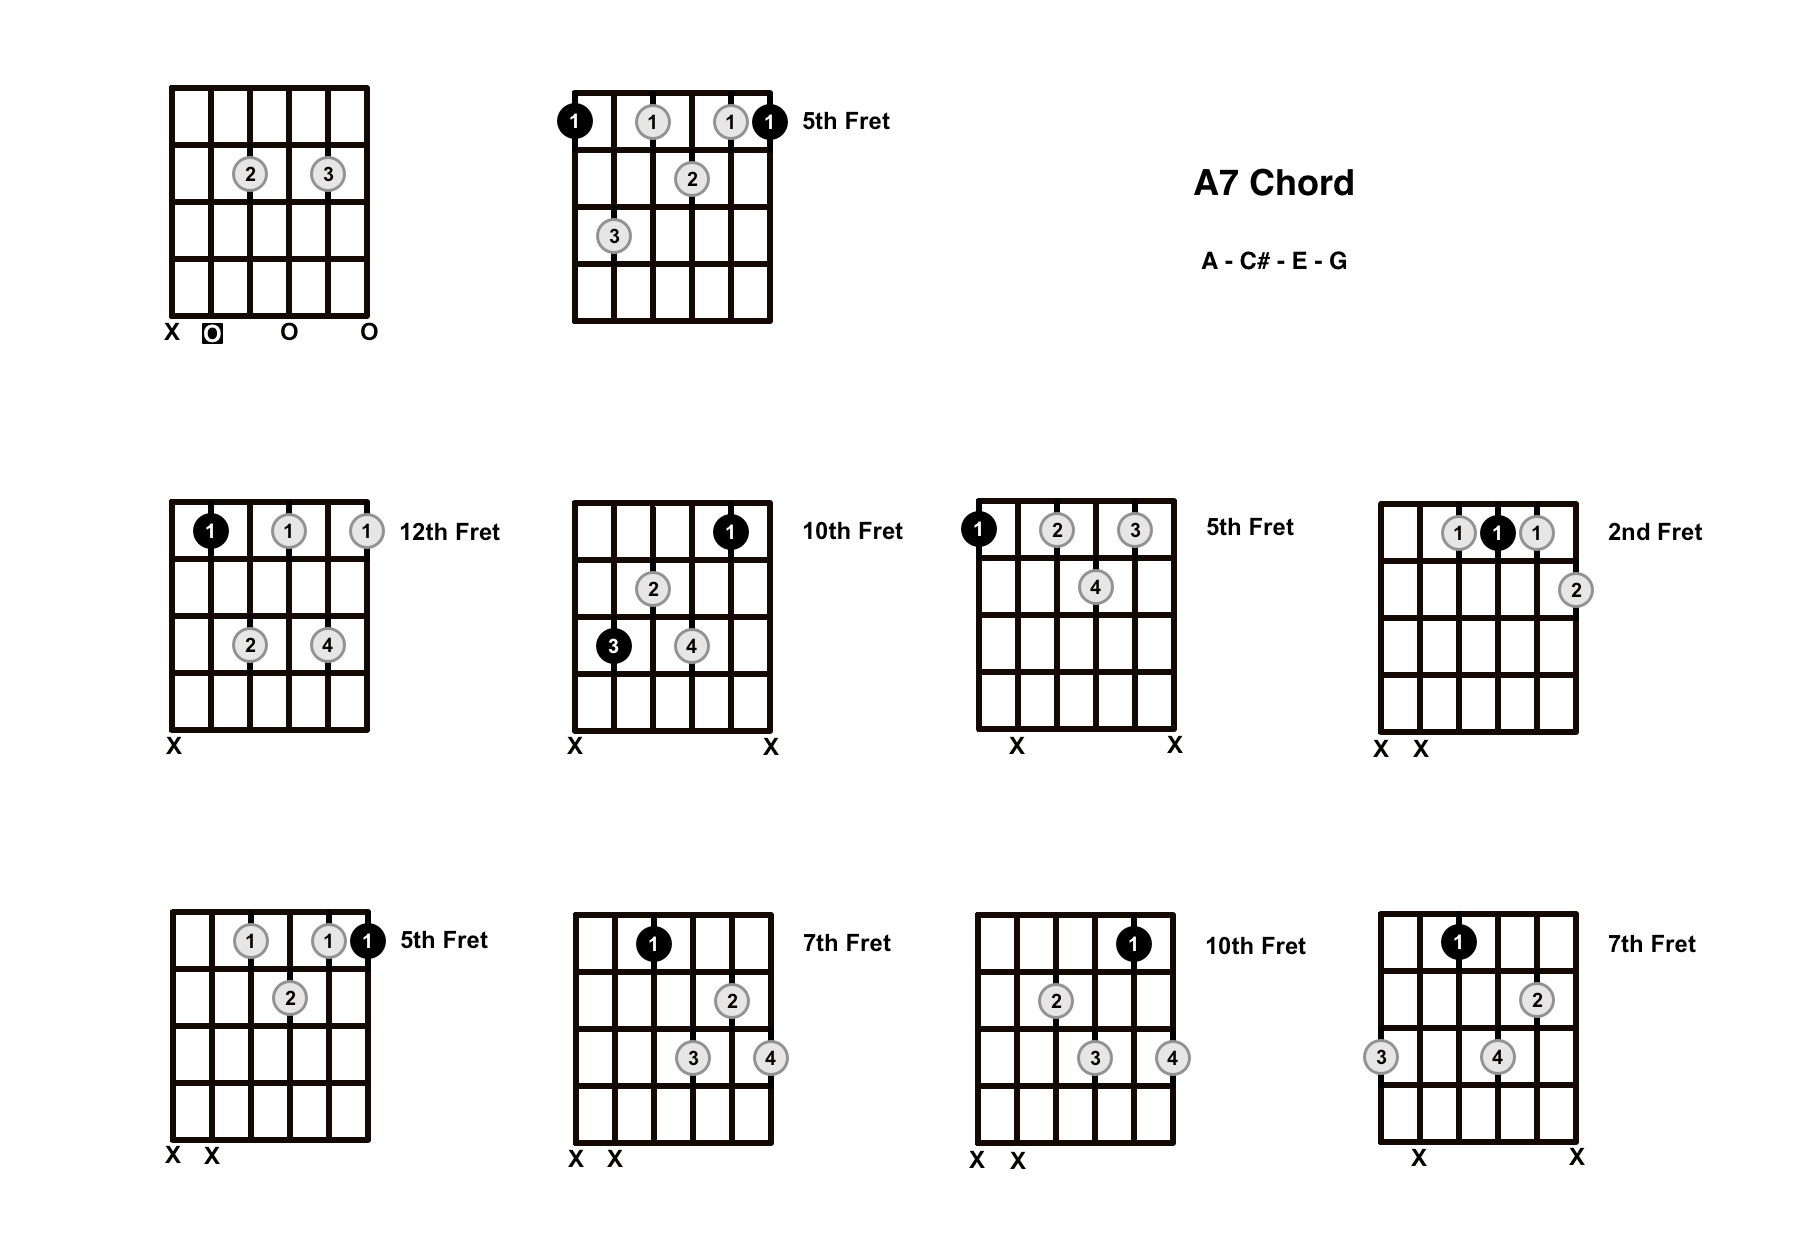 A7 Chord On The Guitar (A Dominant 7) – Diagrams, Finger Positions and Theory